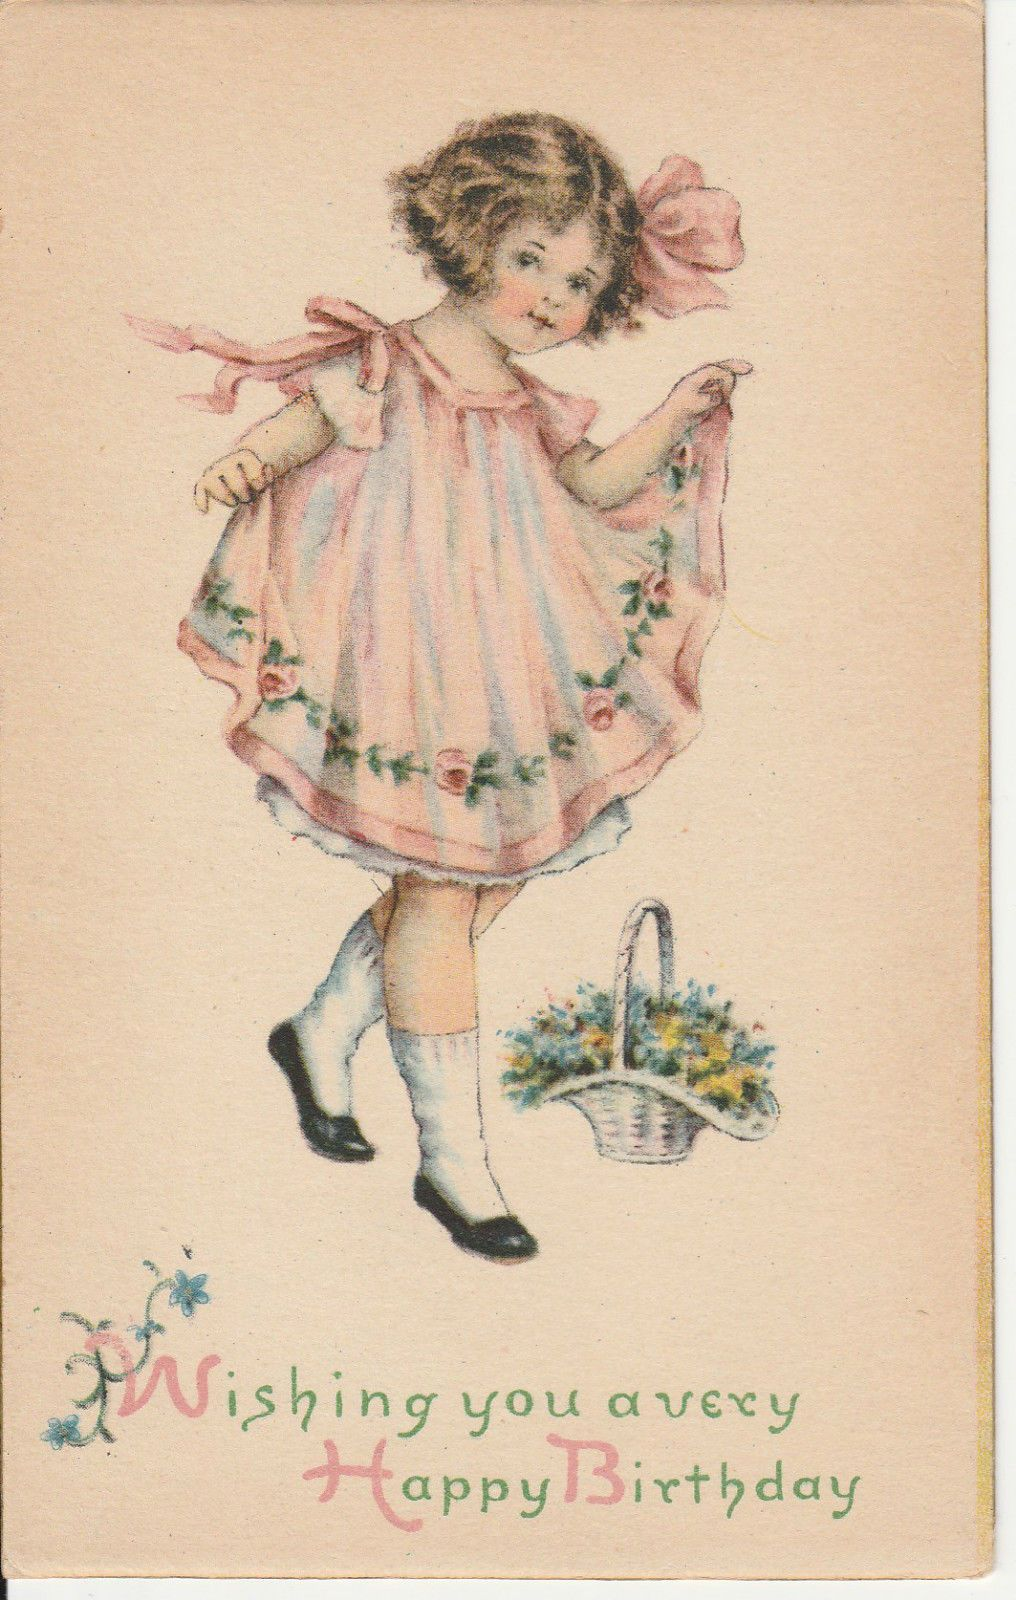 Happy birthday greeting little girl pink dress basket flowers 1918 happy birthday greeting little girl pink dress basket flowers 1918 postcard picclick kristyandbryce Image collections